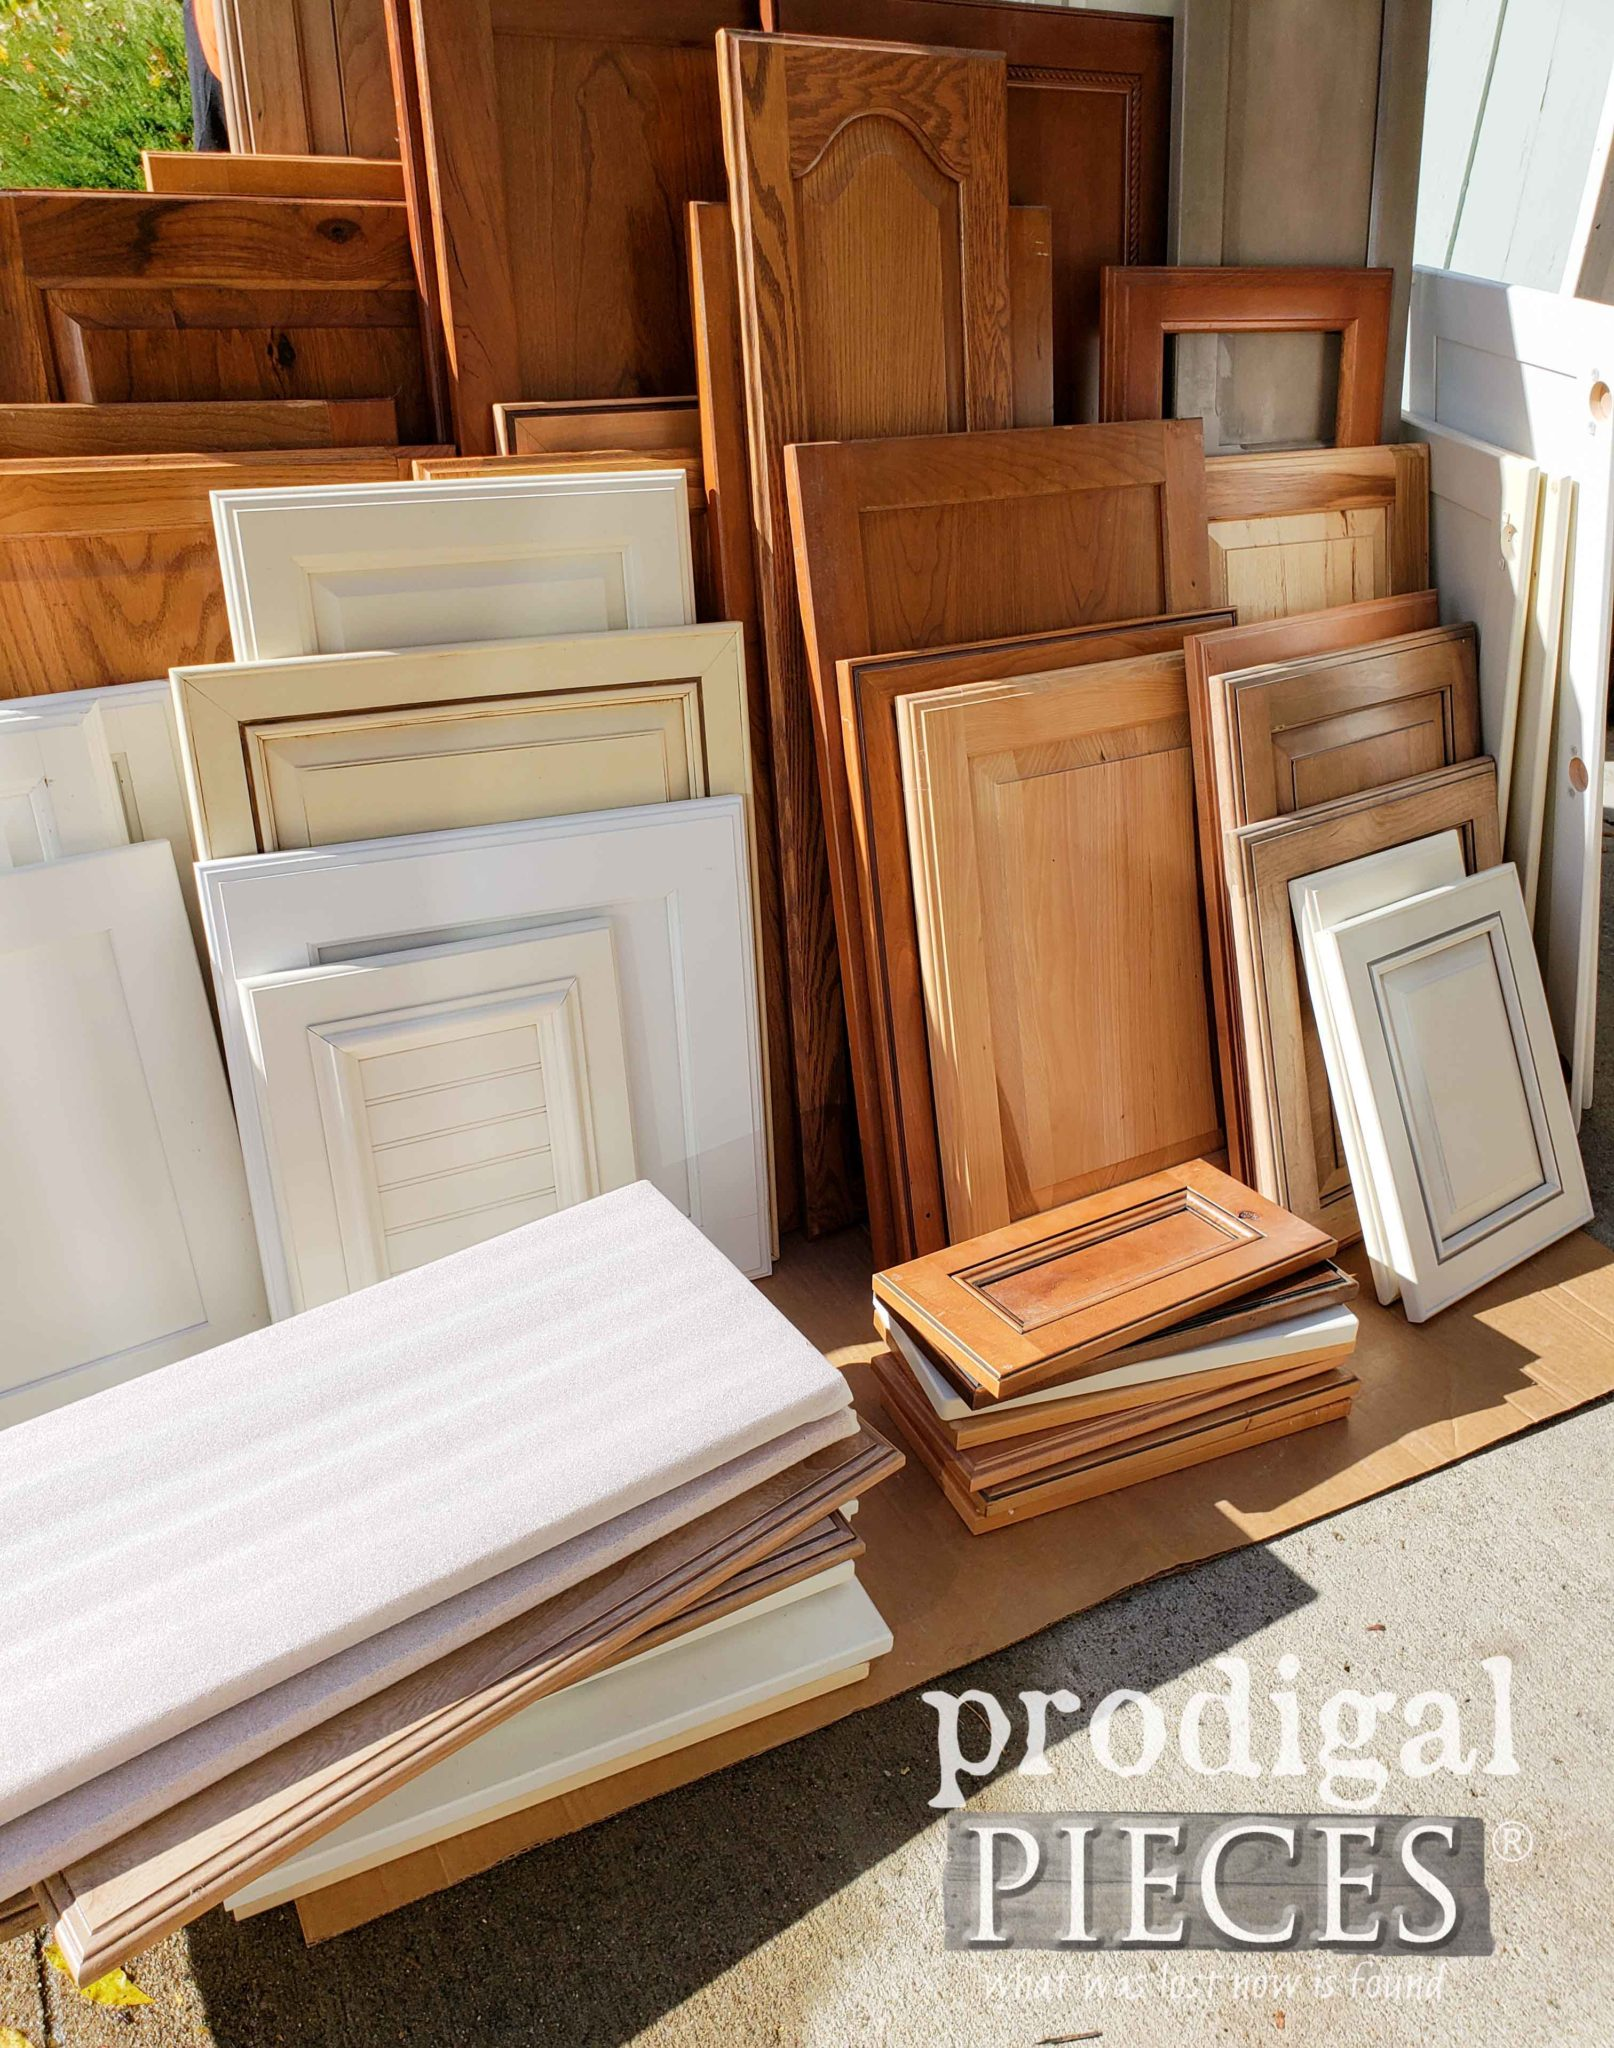 Second-Hand Cupboard Doors for Upcycling Projects | prodigalpieces.com